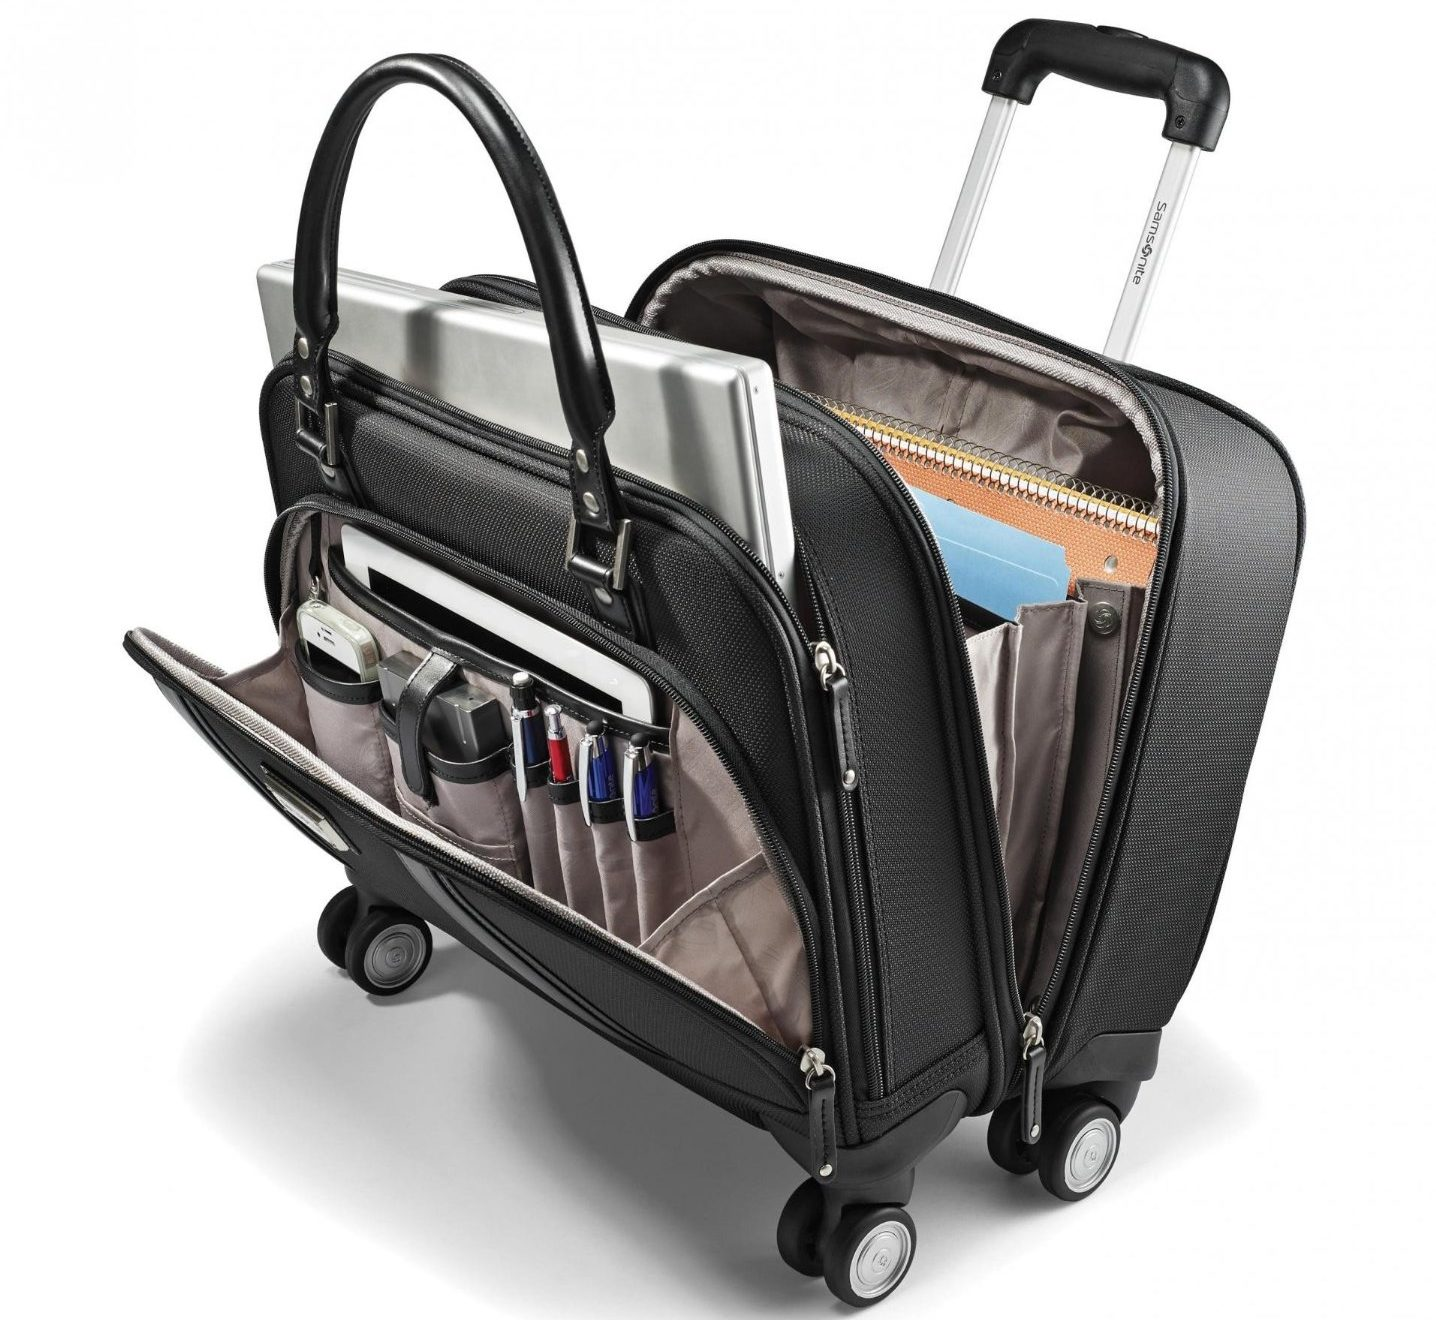 Best Briefcase on Wheels for Women